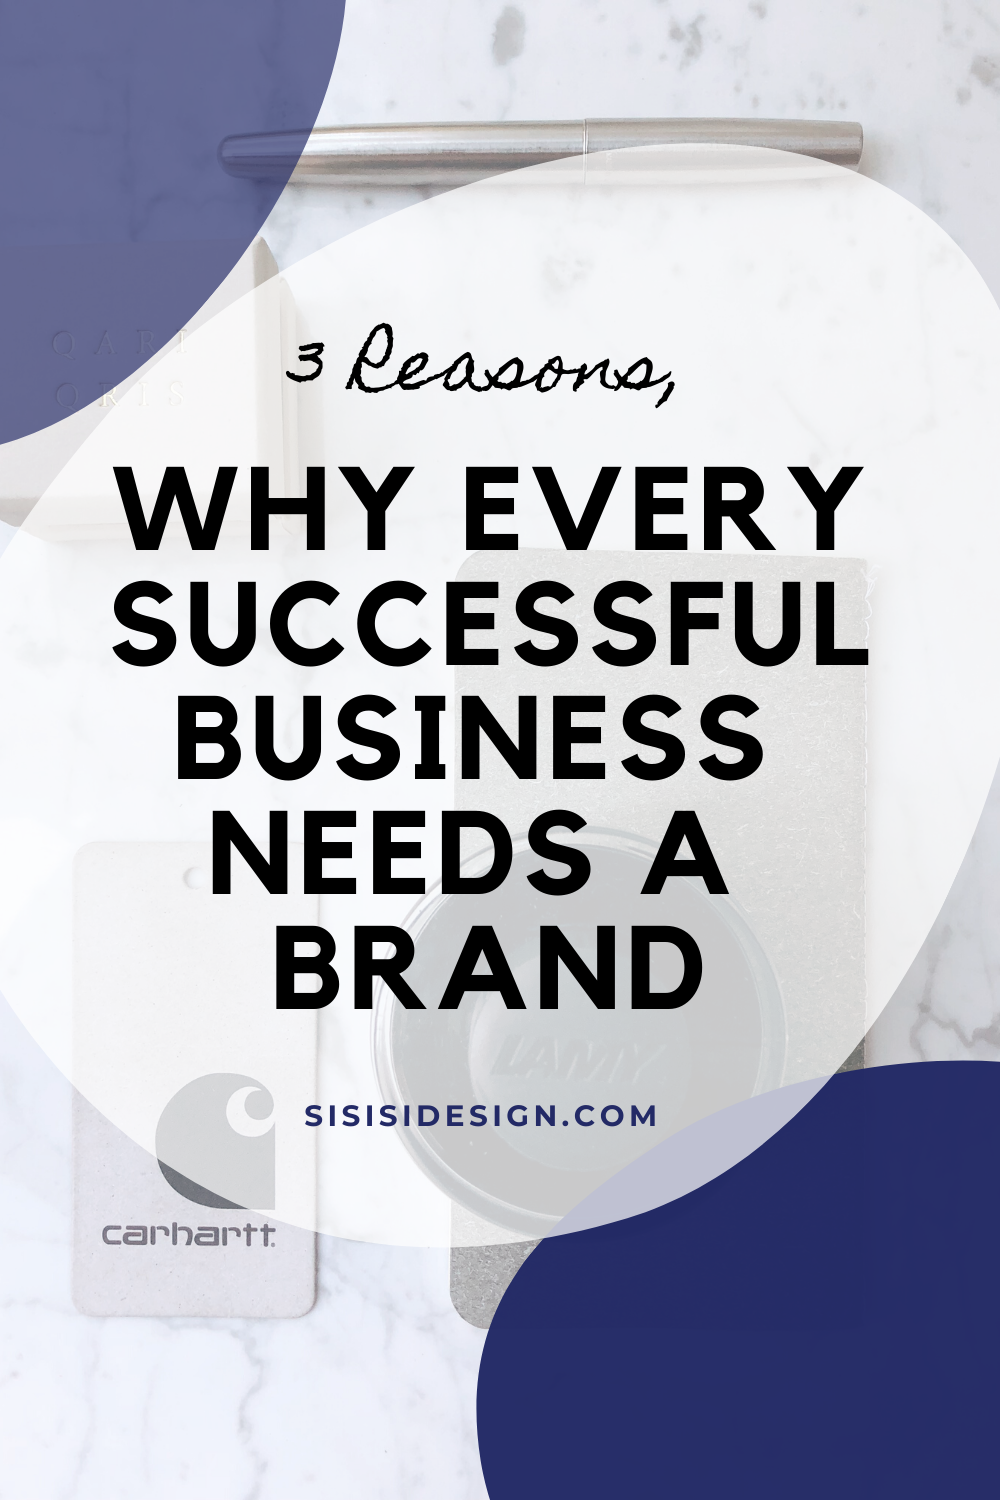 Why every successful business needs a brand